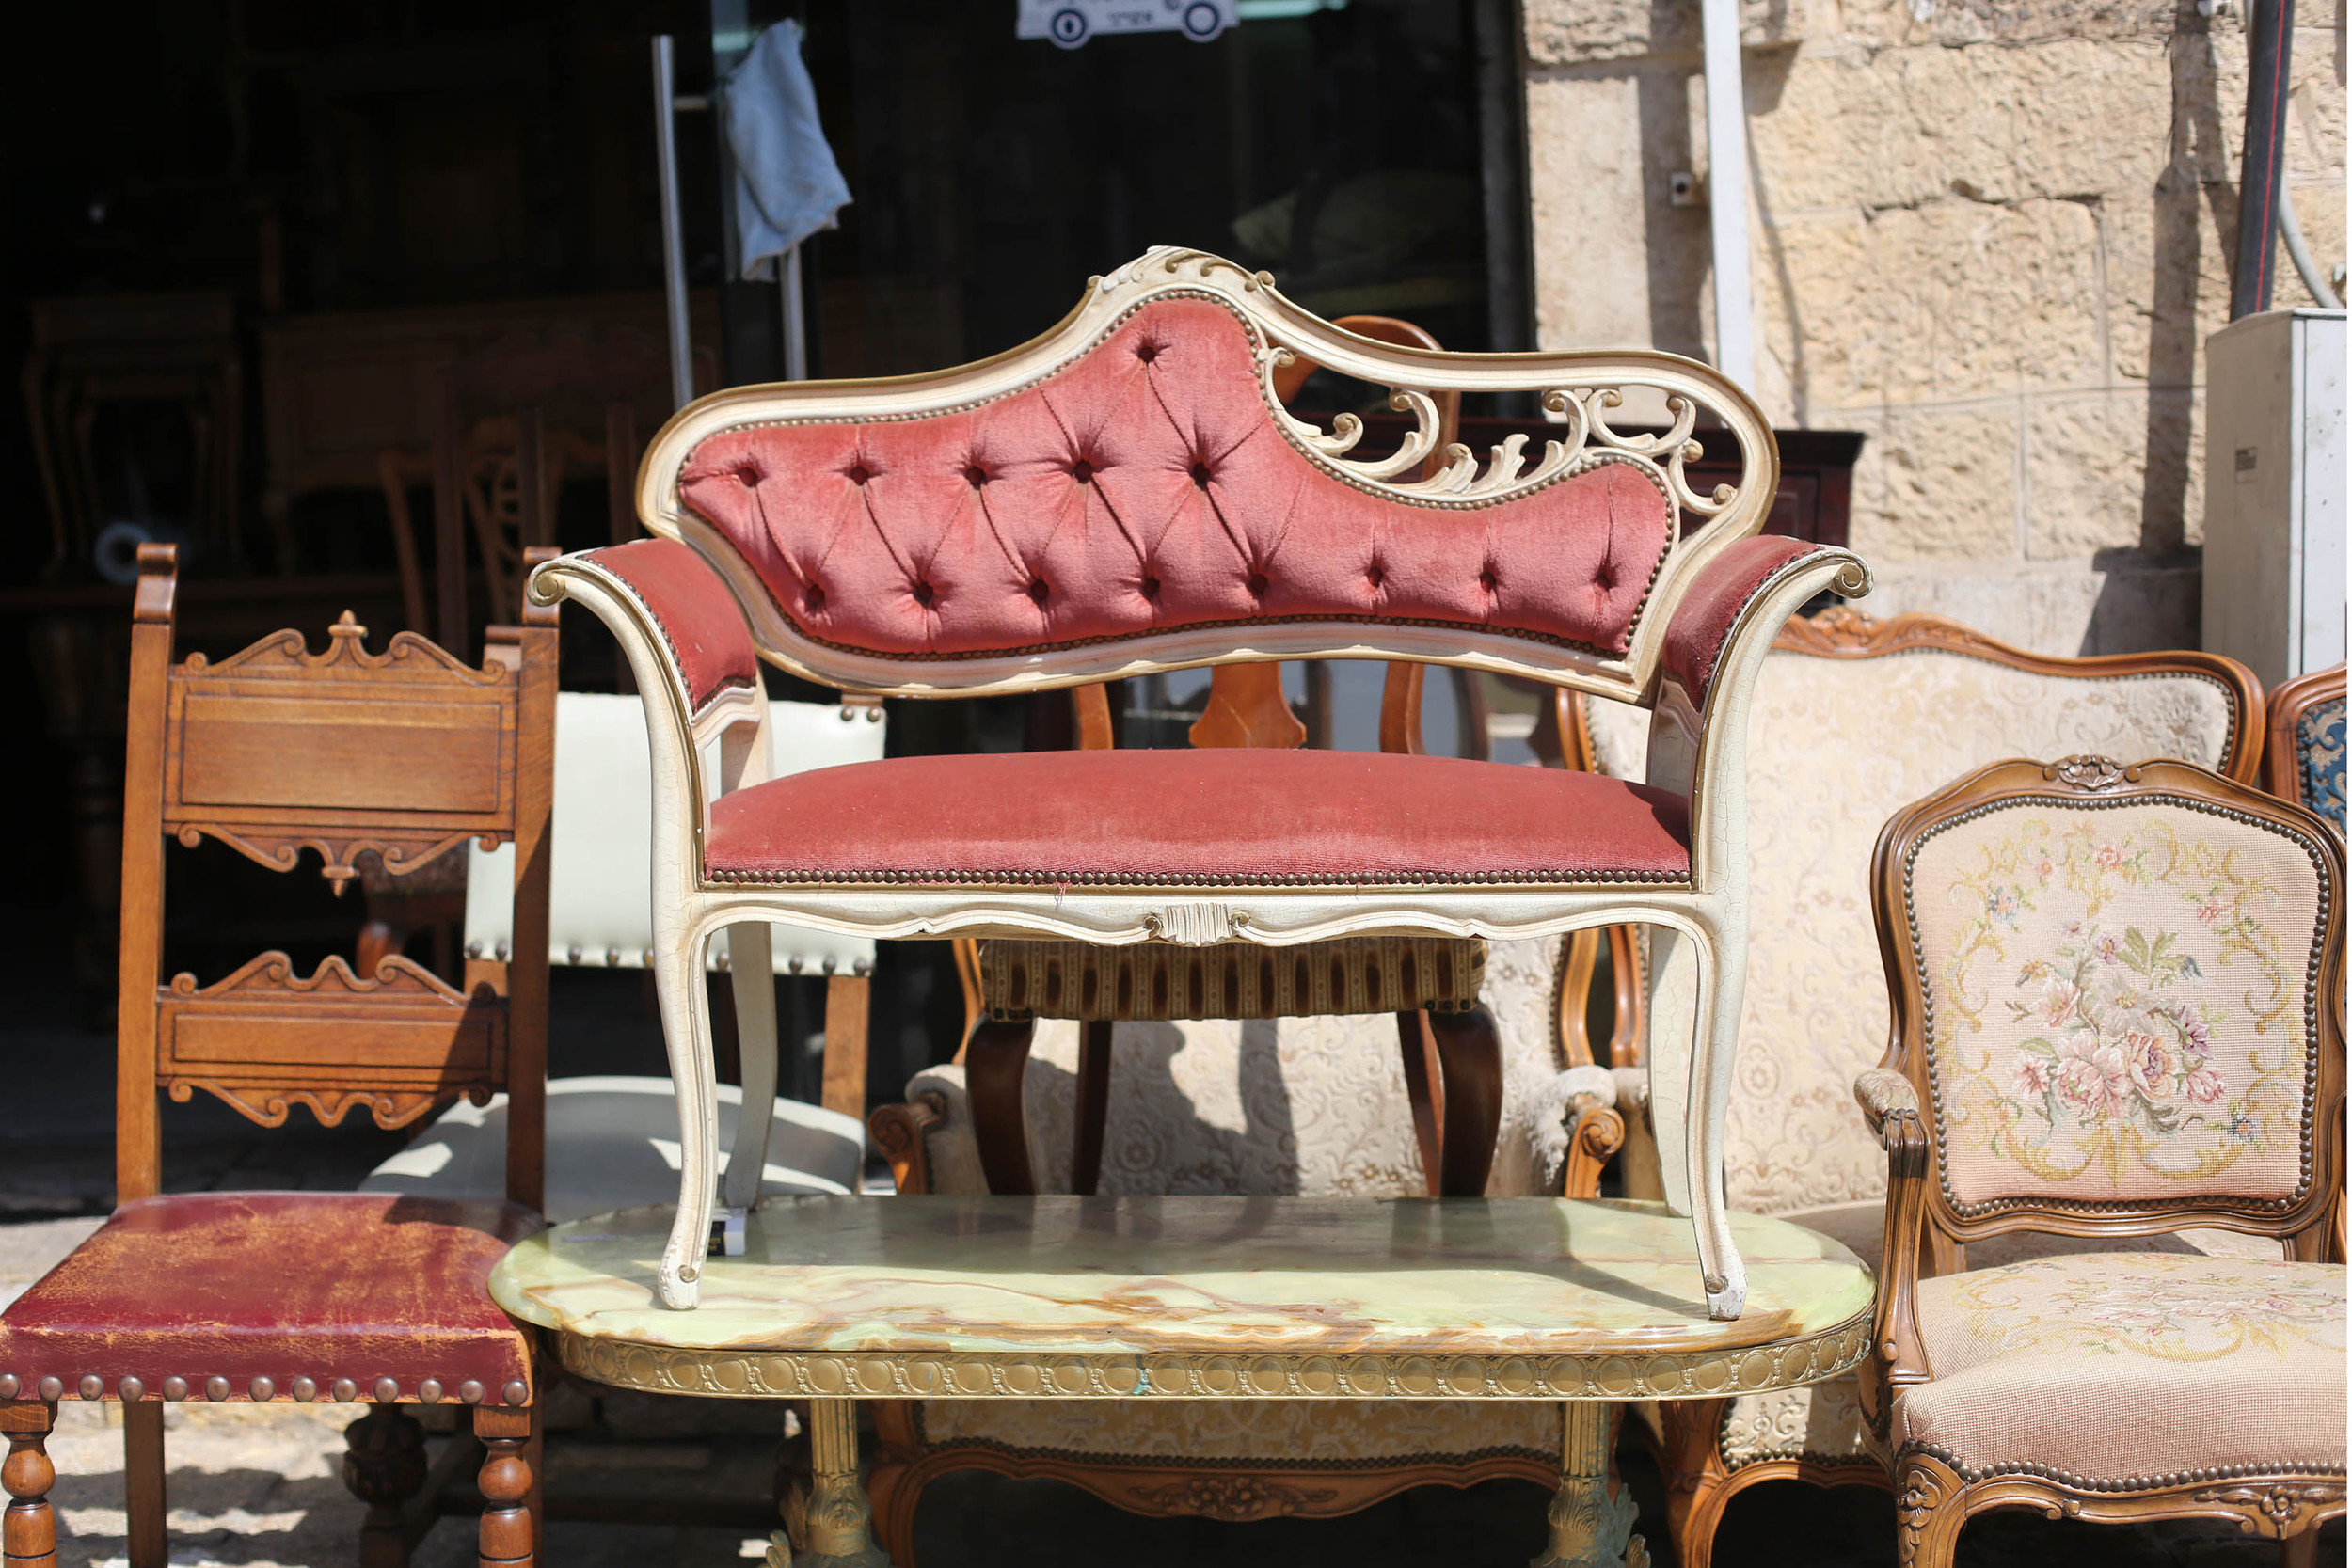 Antique furniture lined the streets.